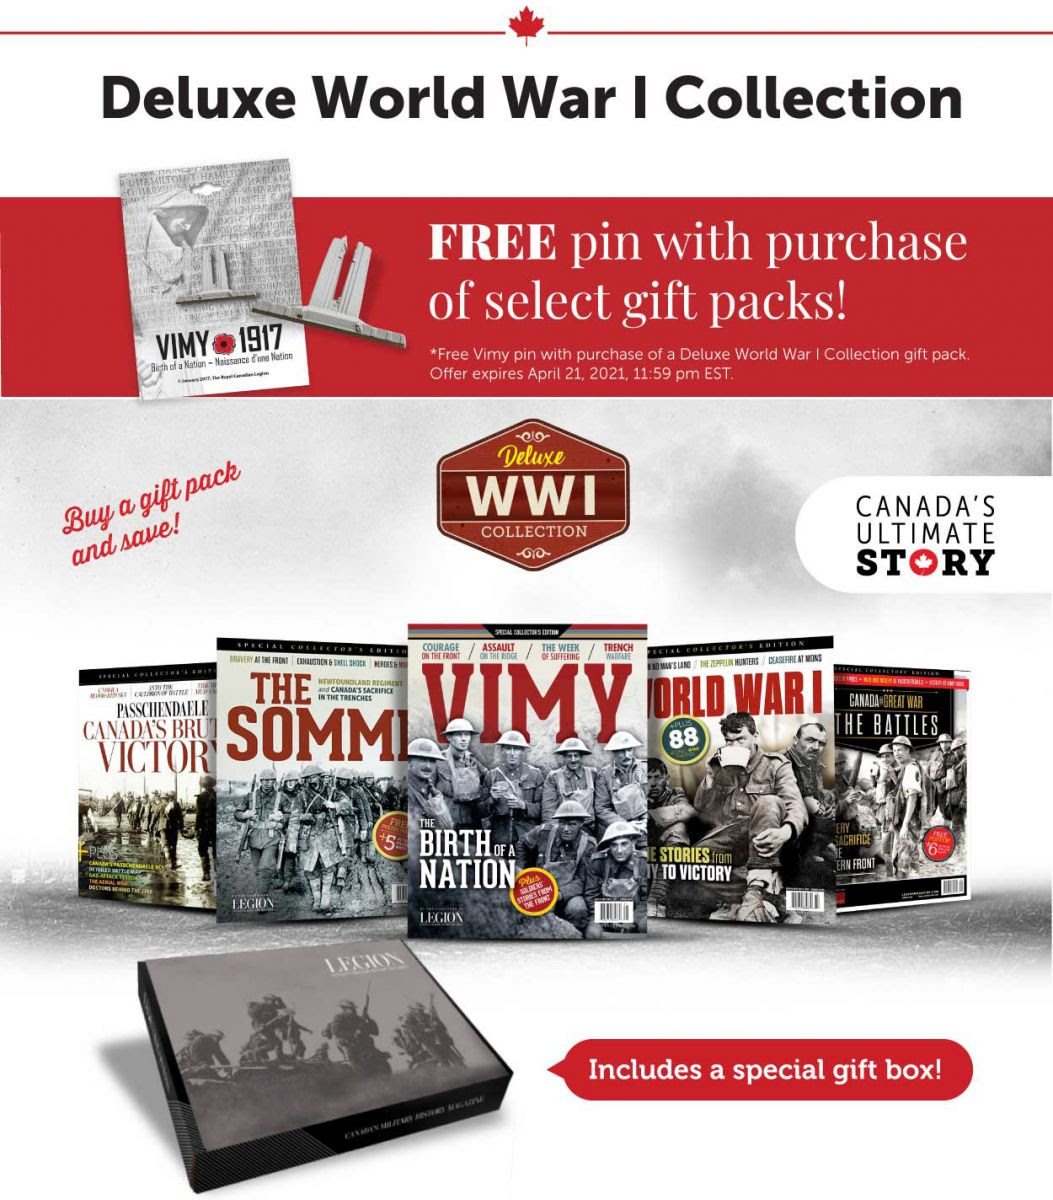 Deluxe World War I Collection